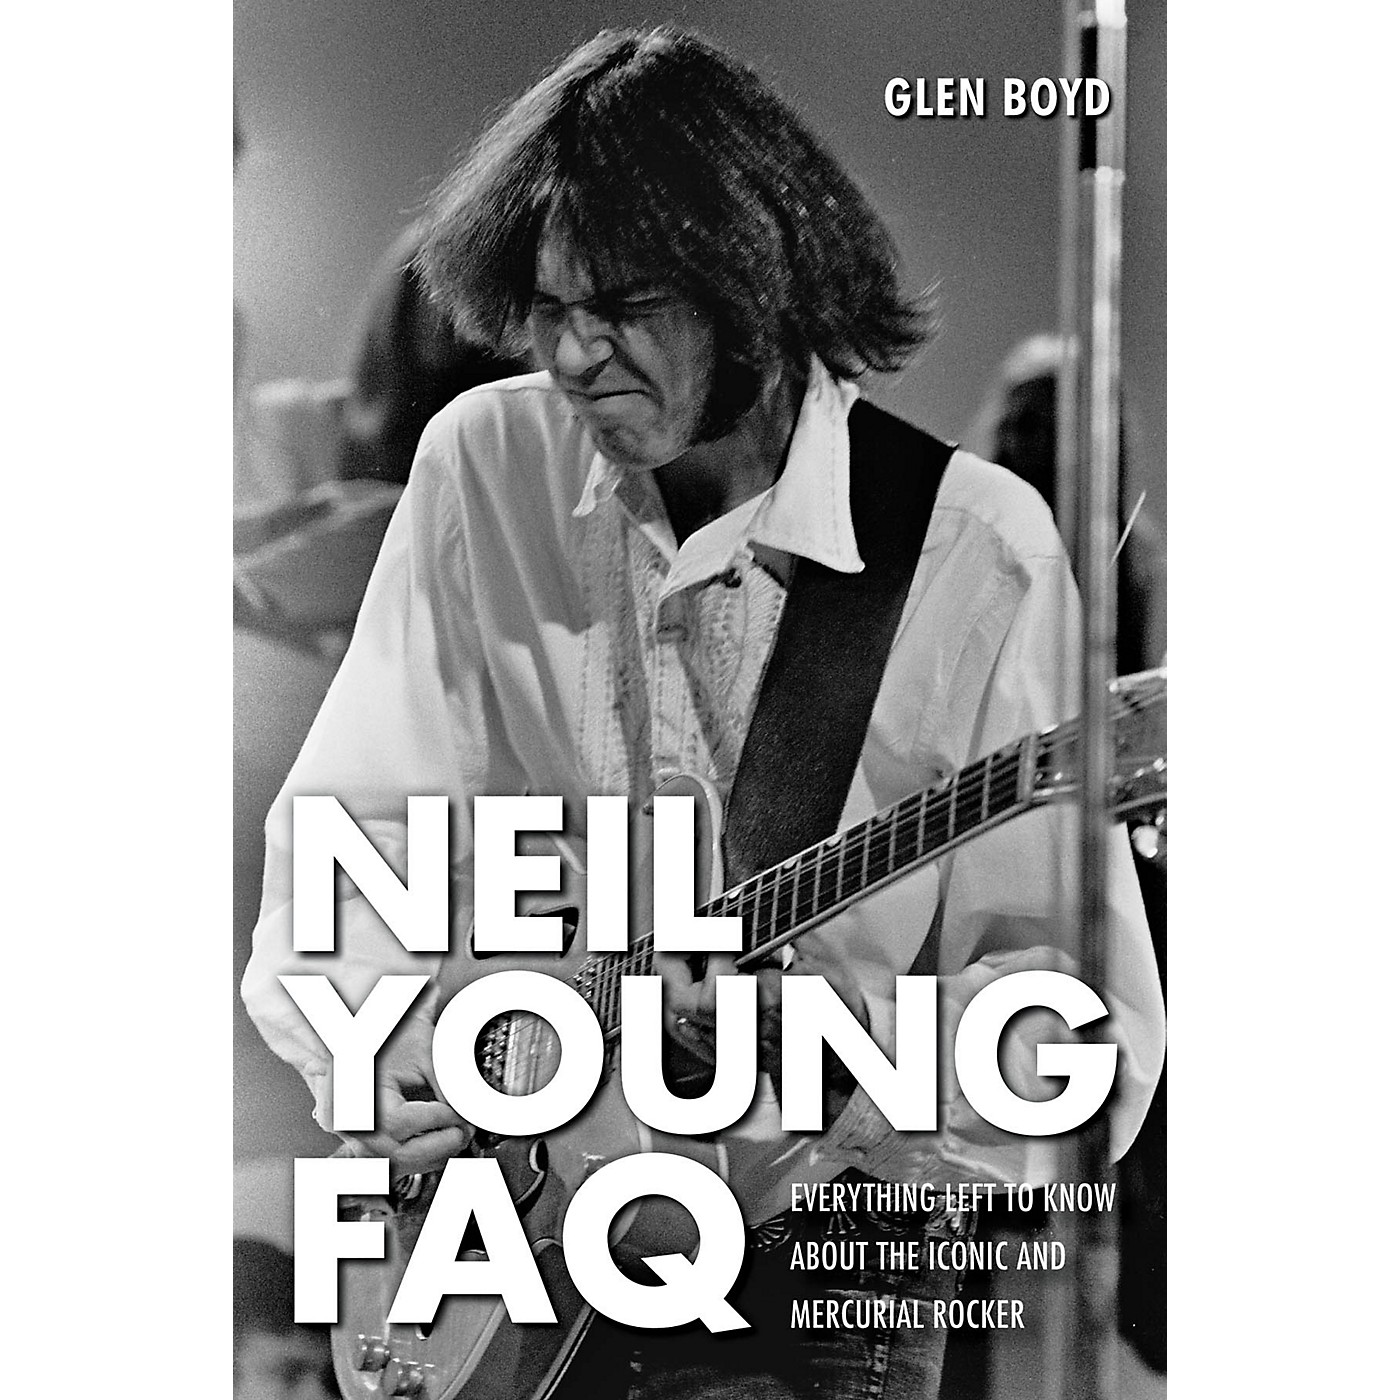 Hal Leonard Neil Young FAQ - Everything Left to Know About the Iconic and Mercurial Rocker Book thumbnail